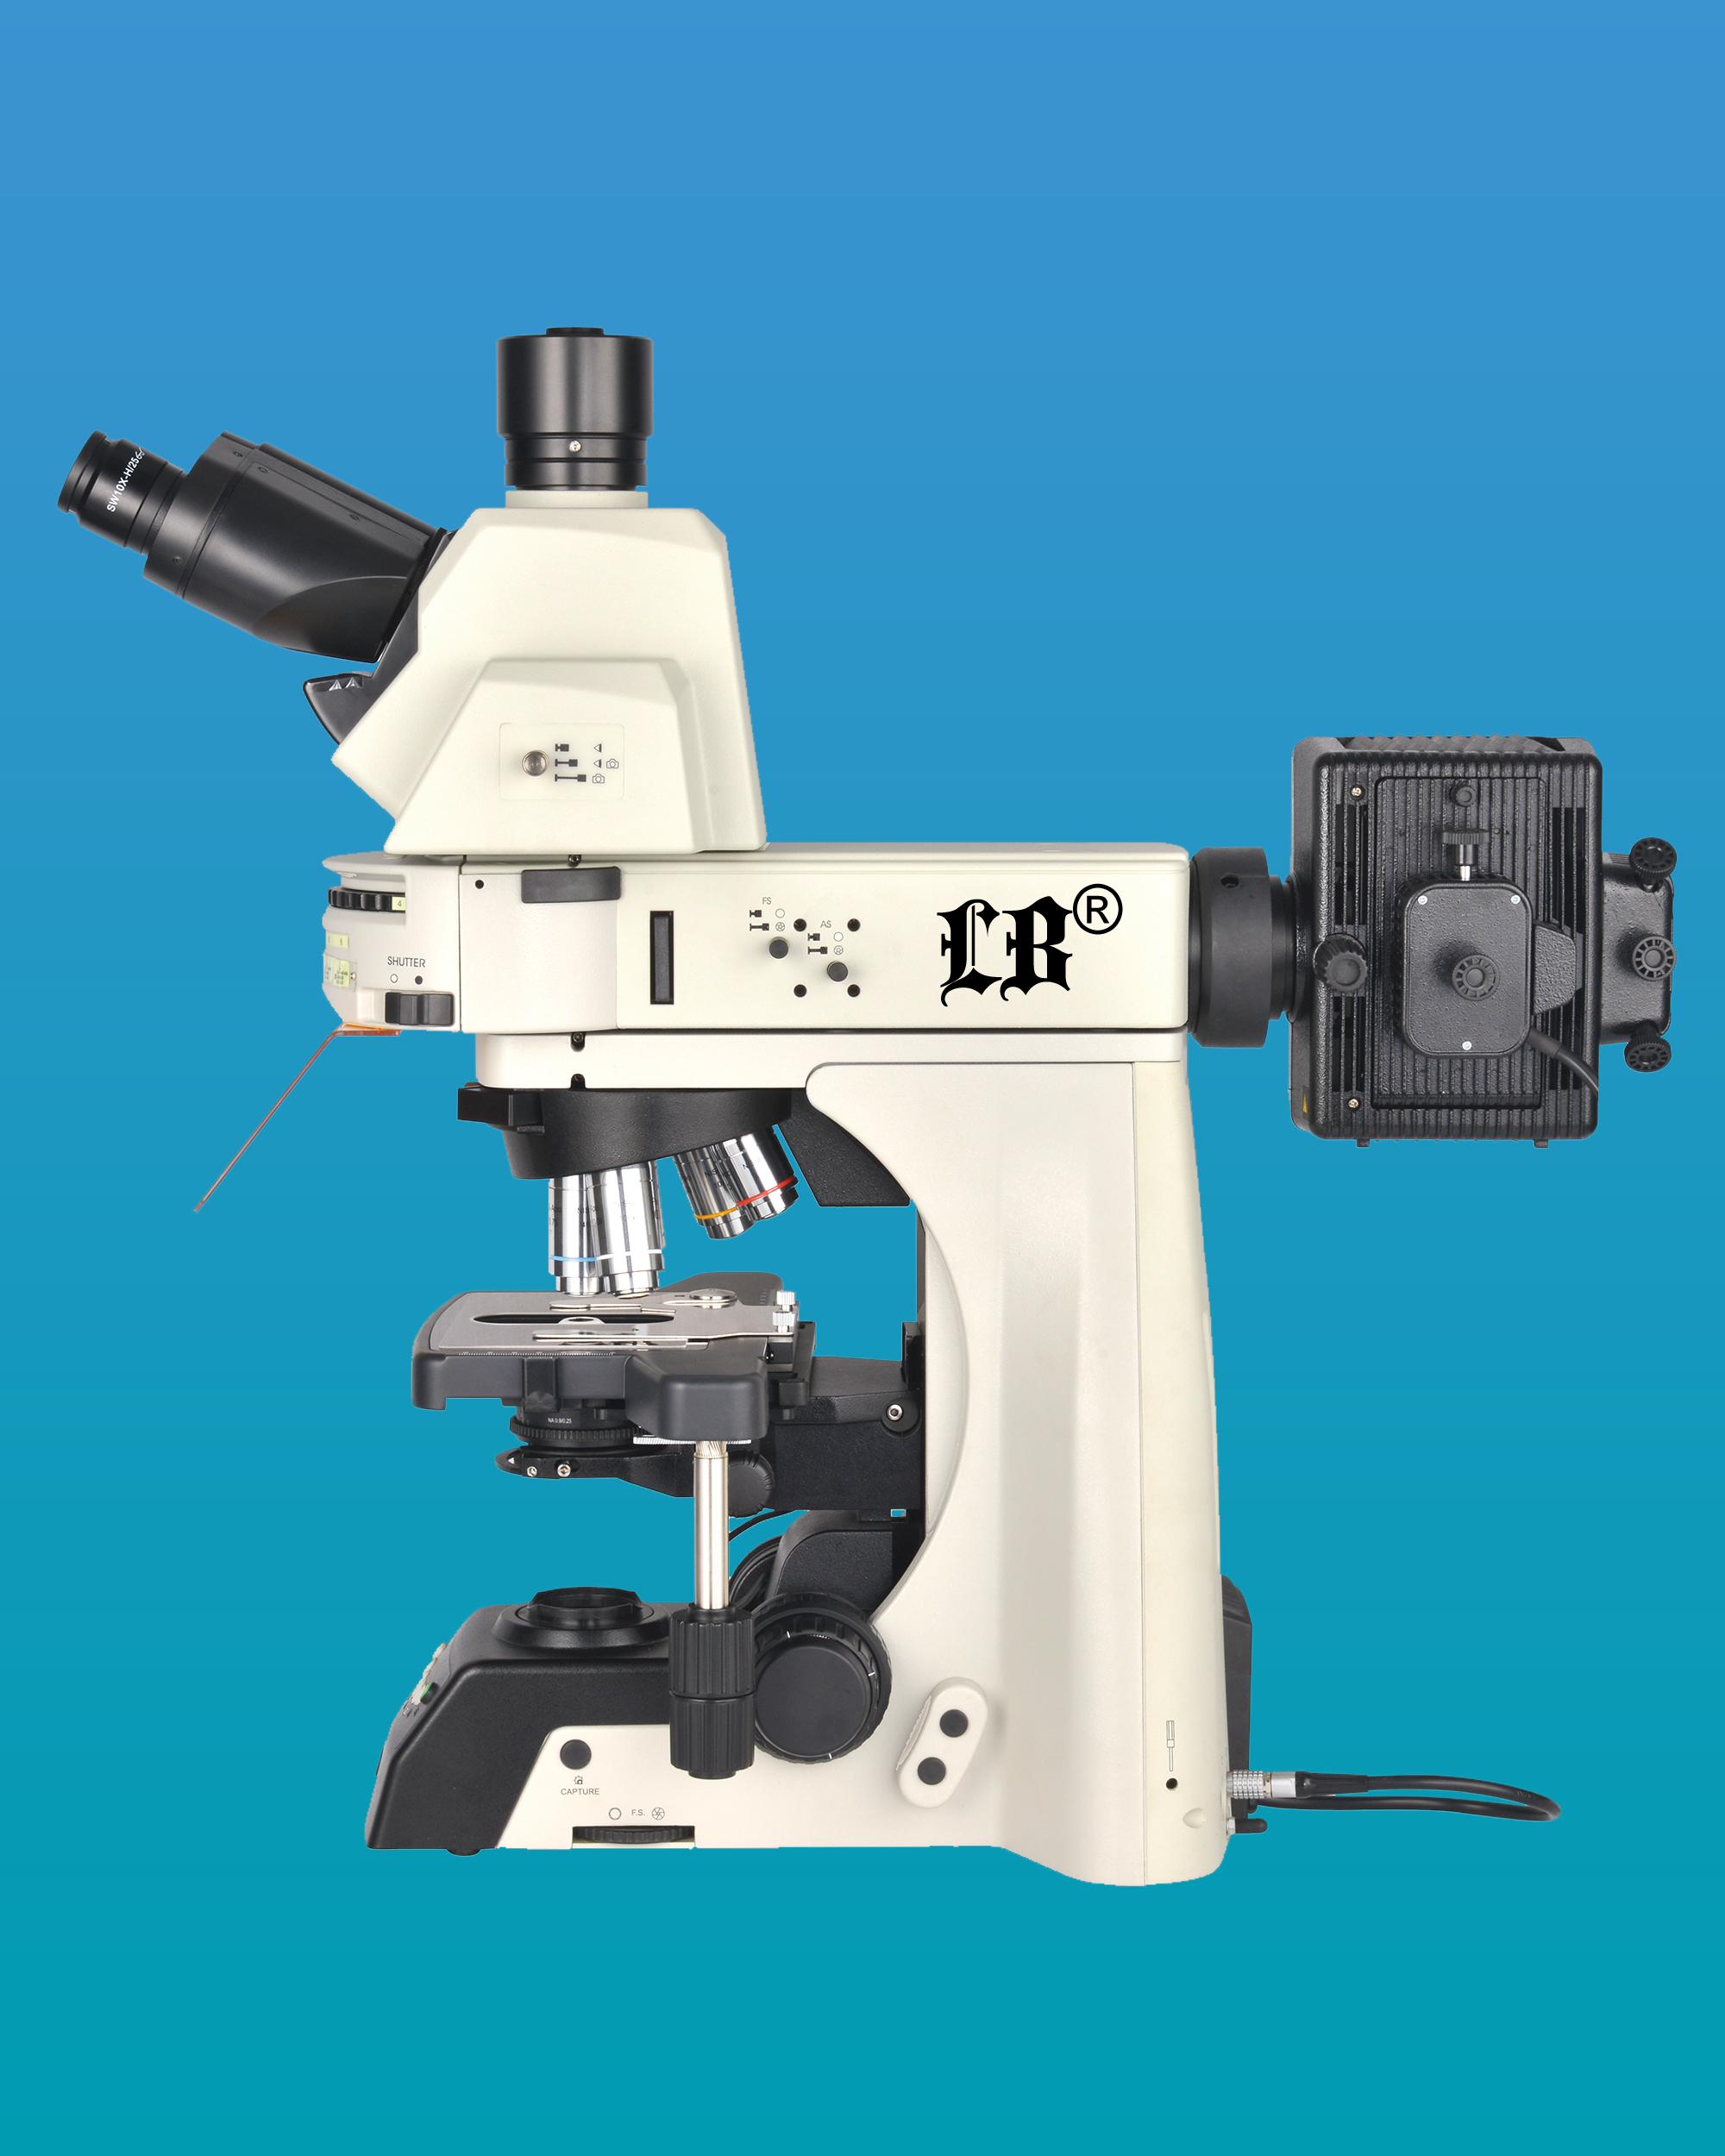 [LB-287] Research Fluorescent Biological Microscope